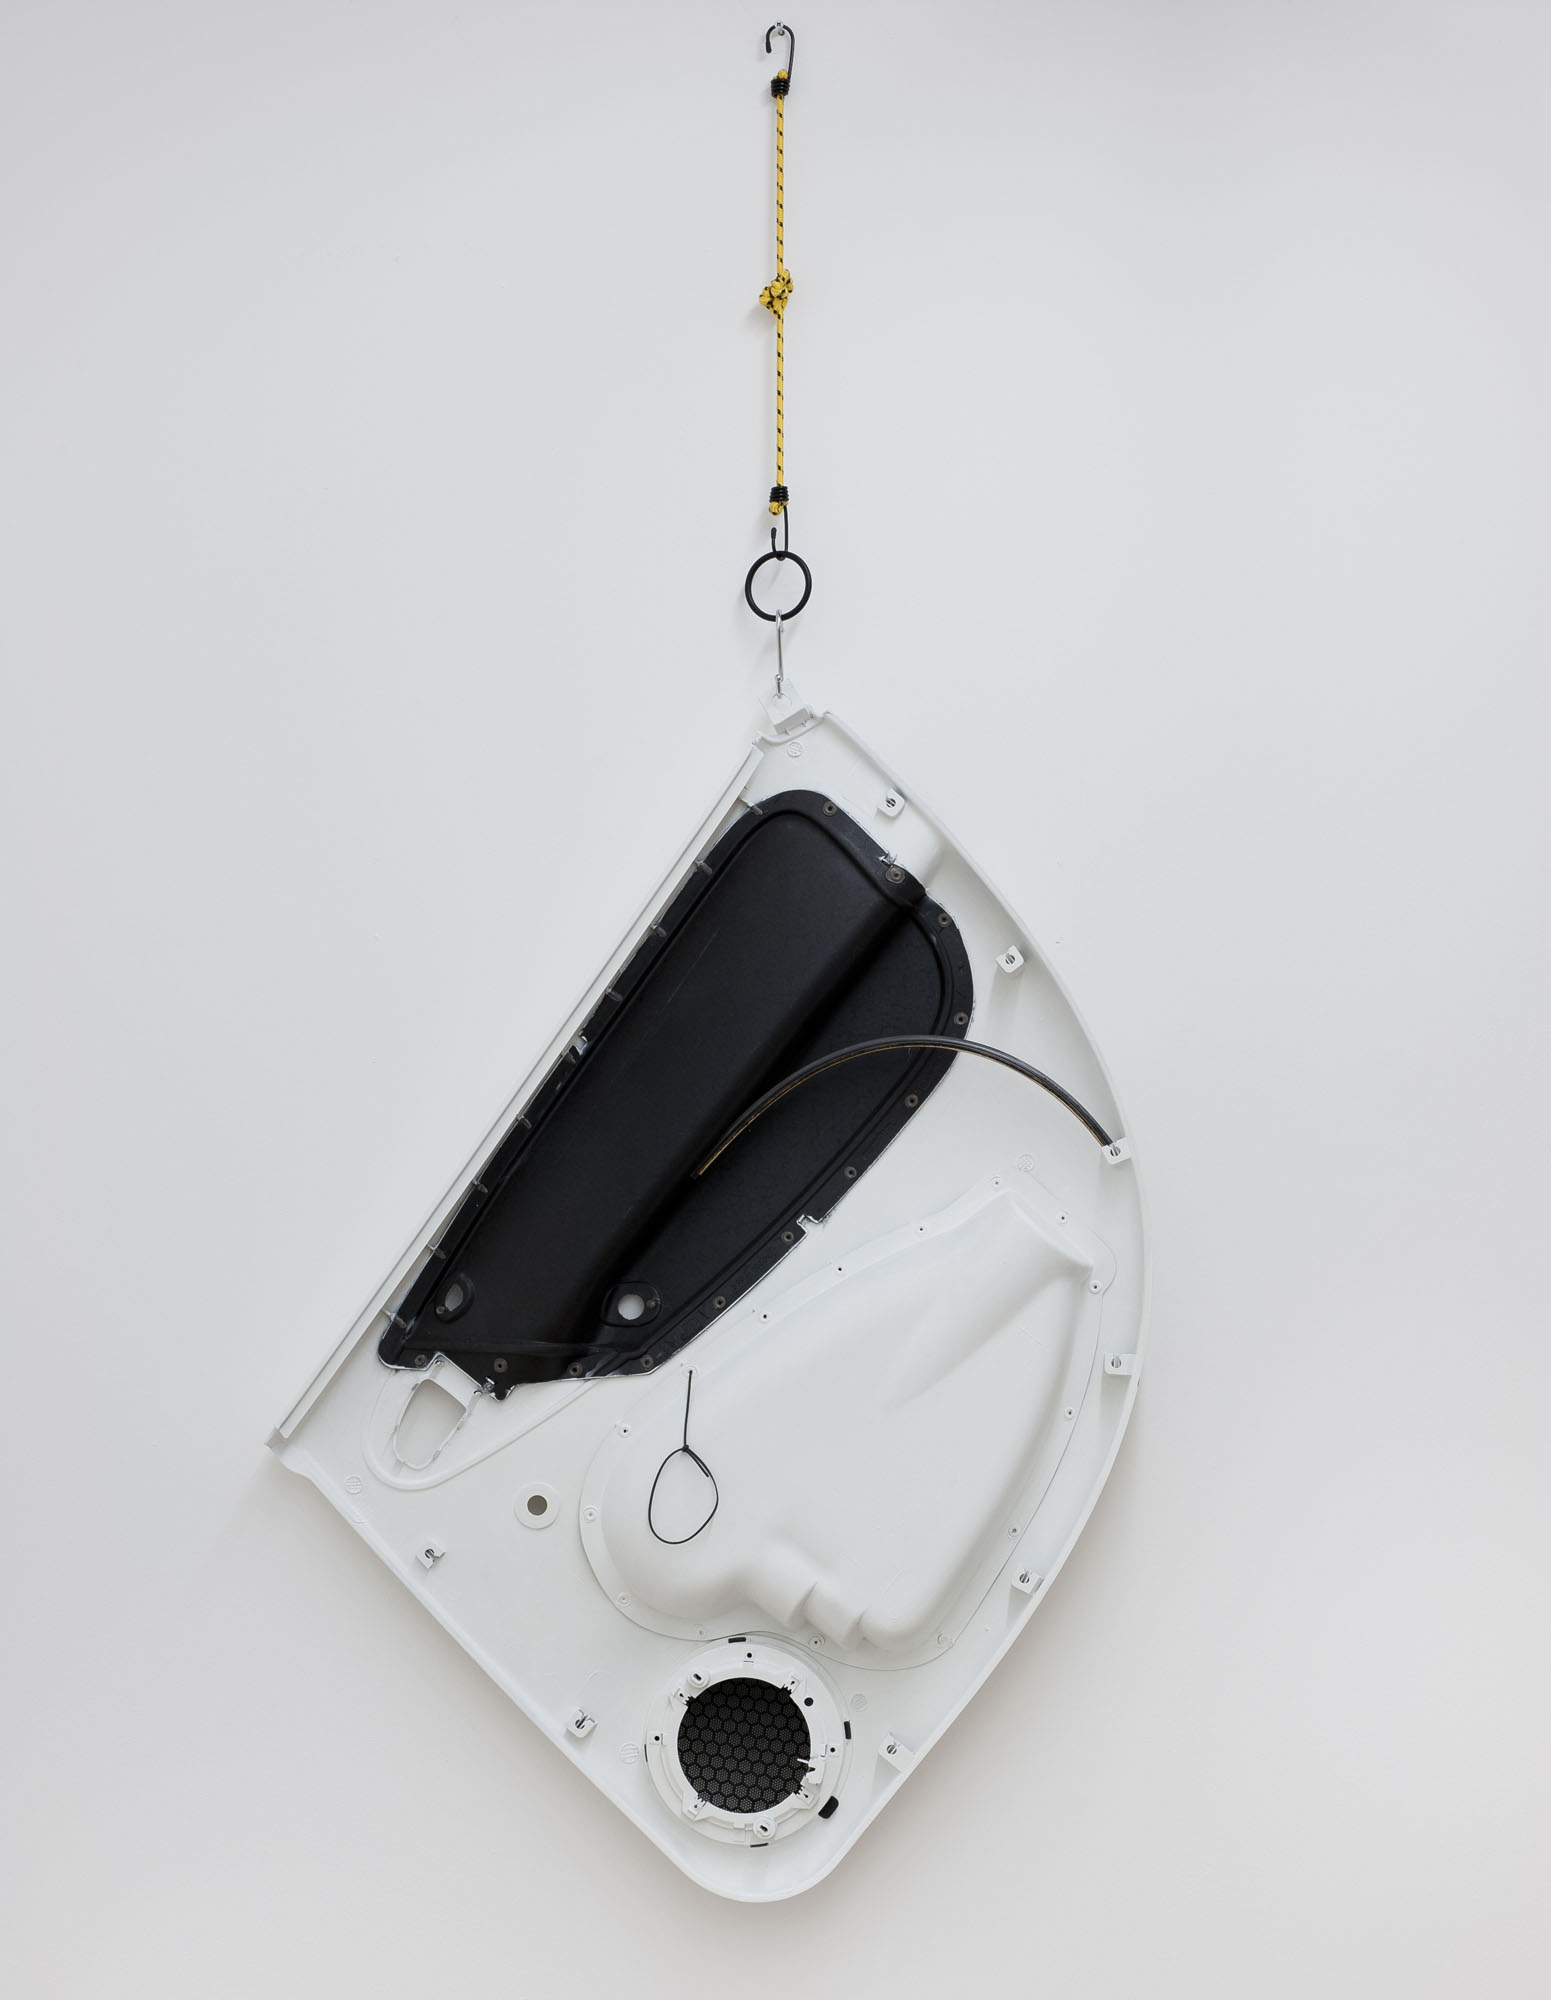 JC2012 - A Curve on the Right, Interior door trim, windscreen wiper blade, paint, bungee cord, hook, metal - 167 x 80 x 12 cm